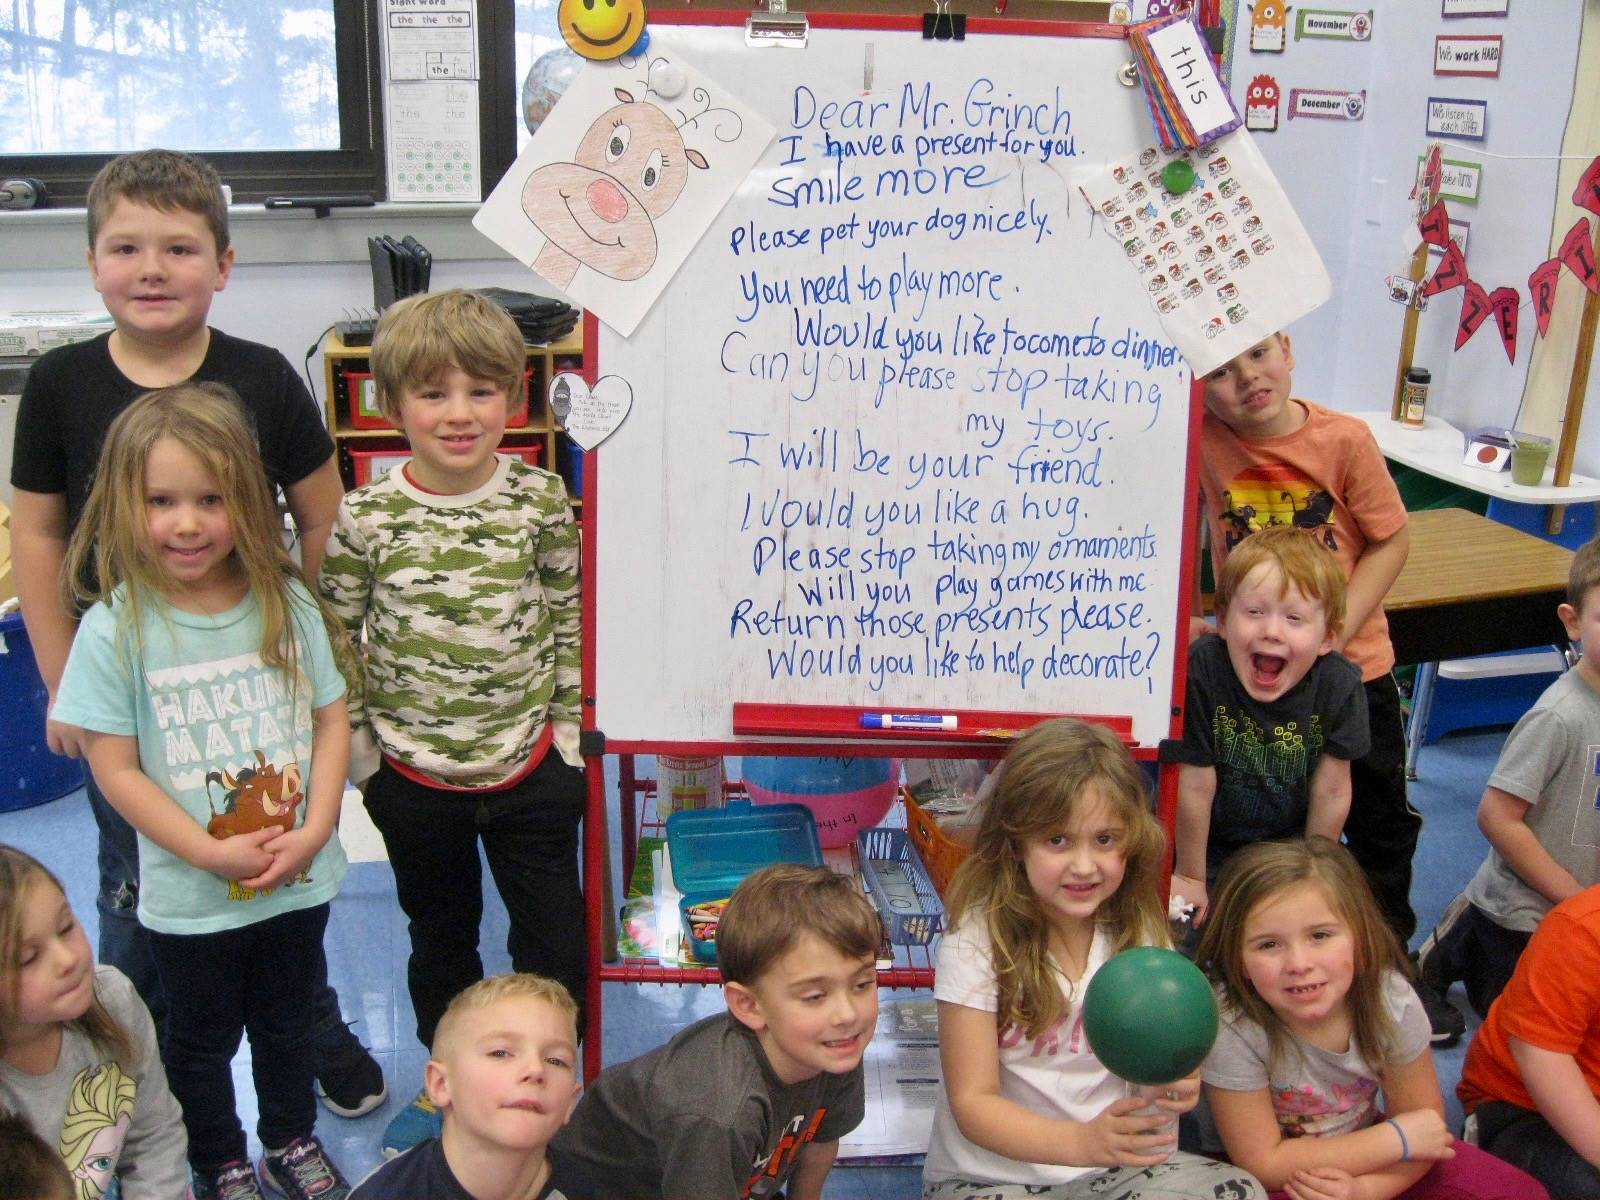 A class responded to Mr. Grinch.